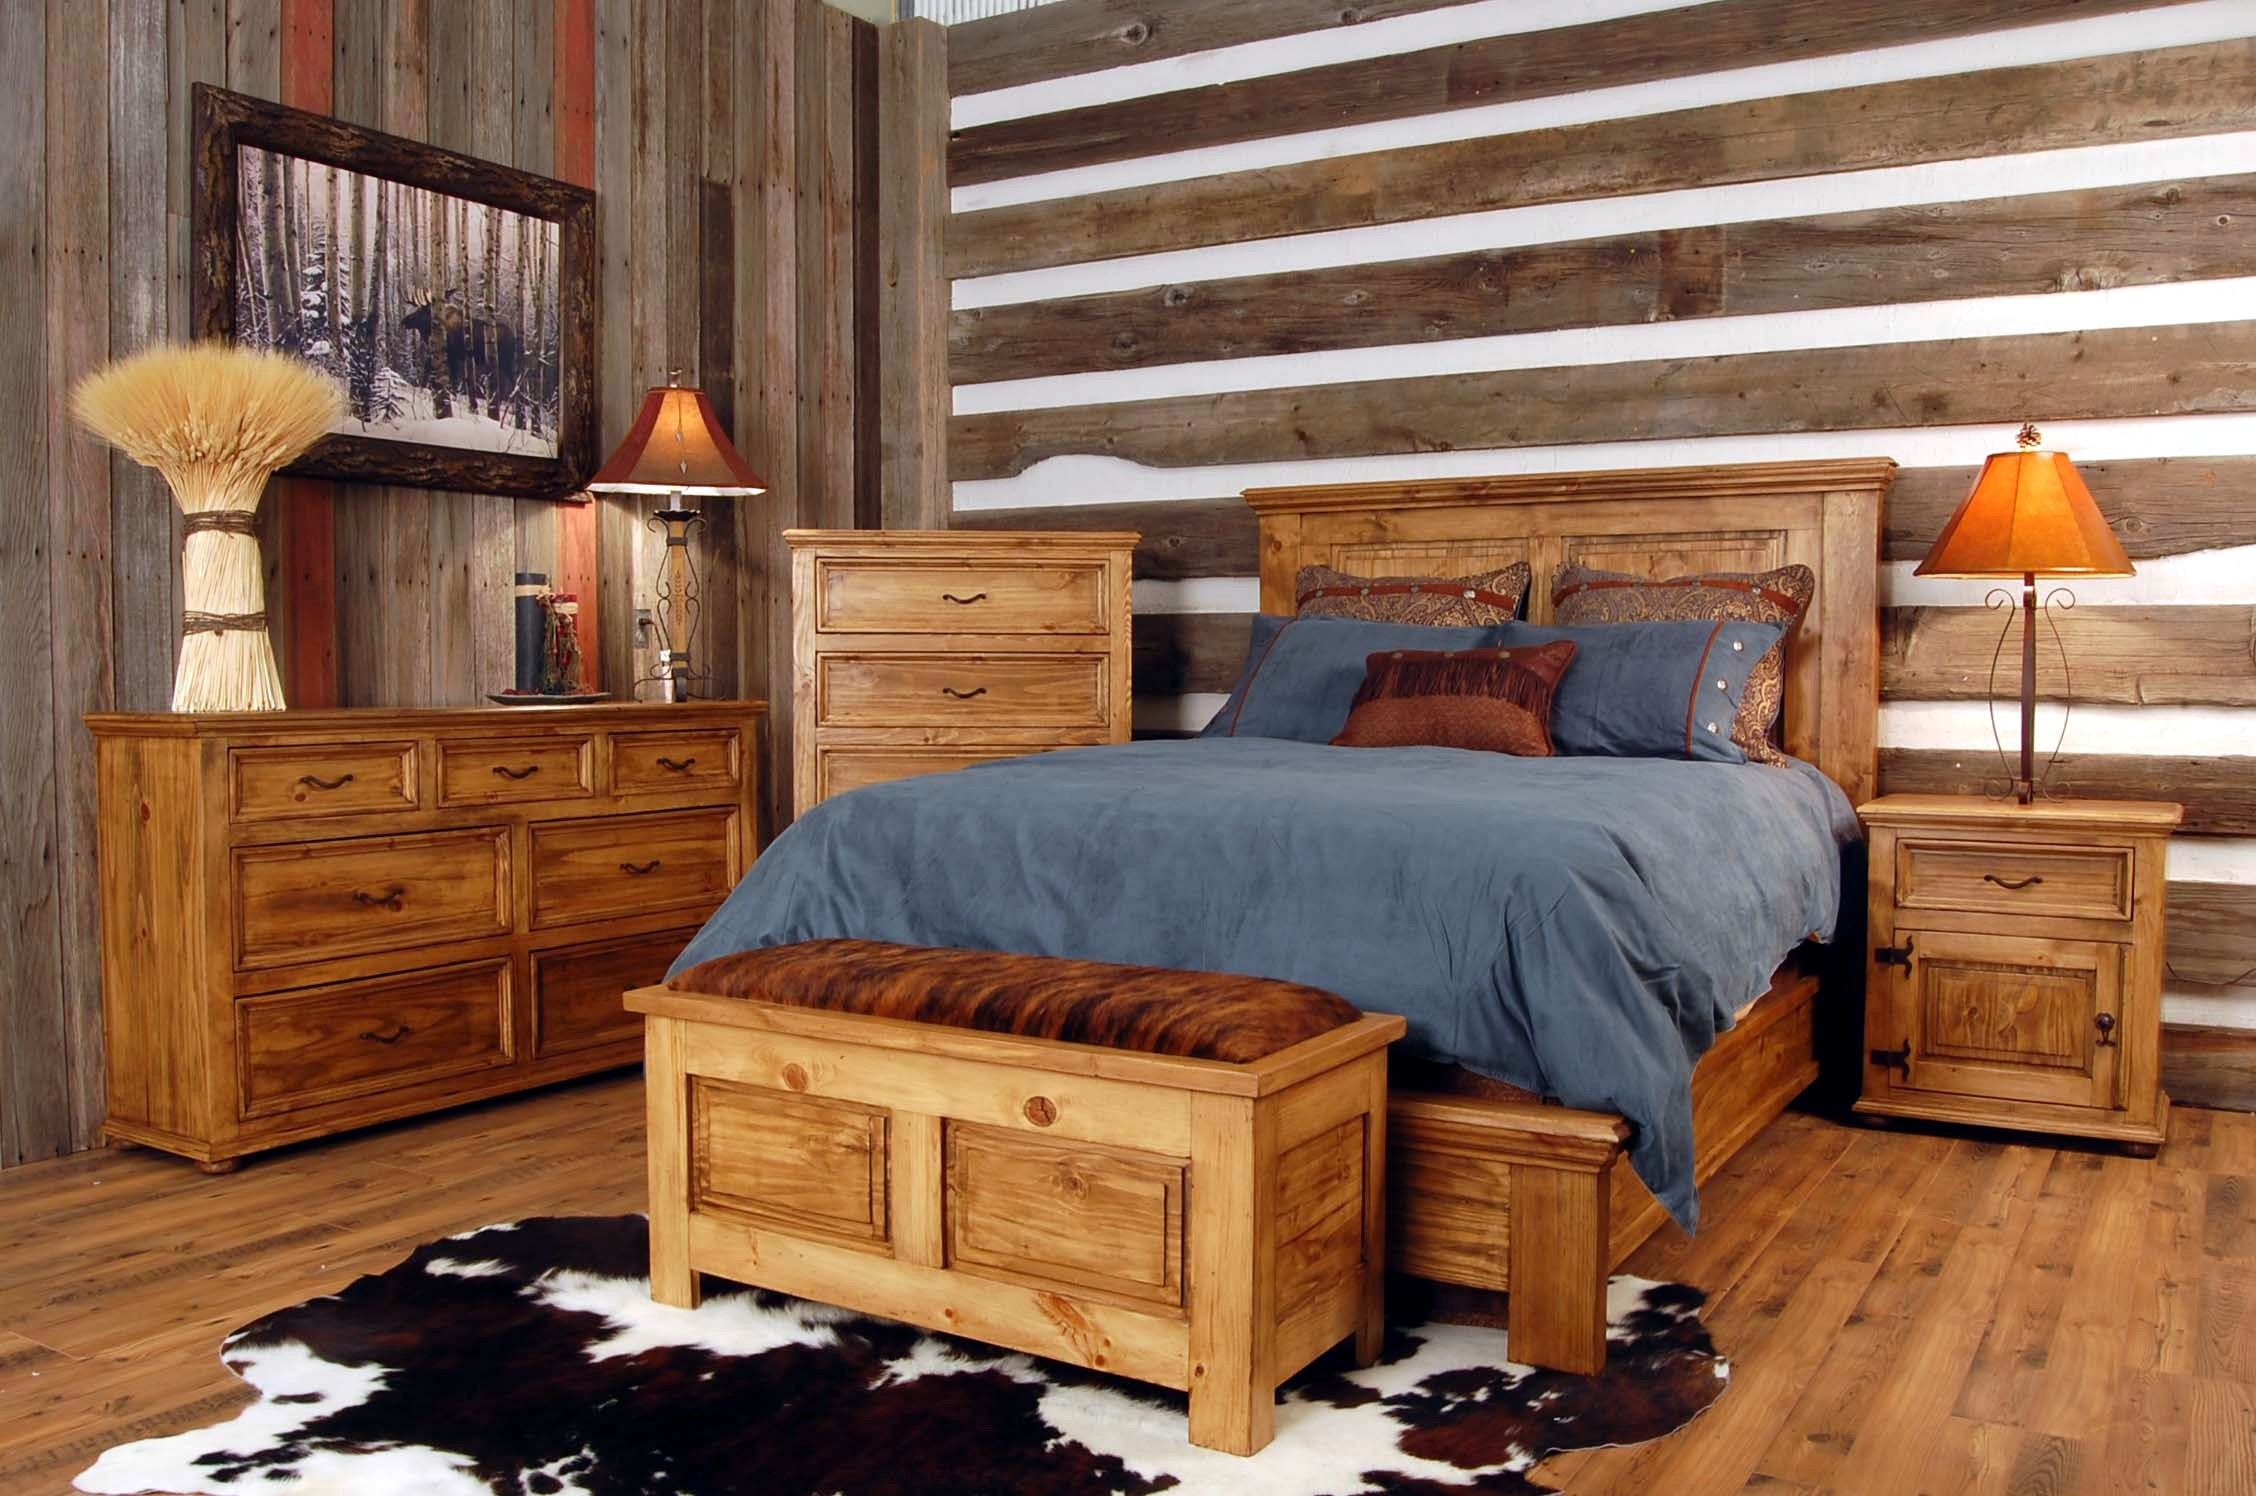 rustic bedroom design and decor ideas for your comfy space on a